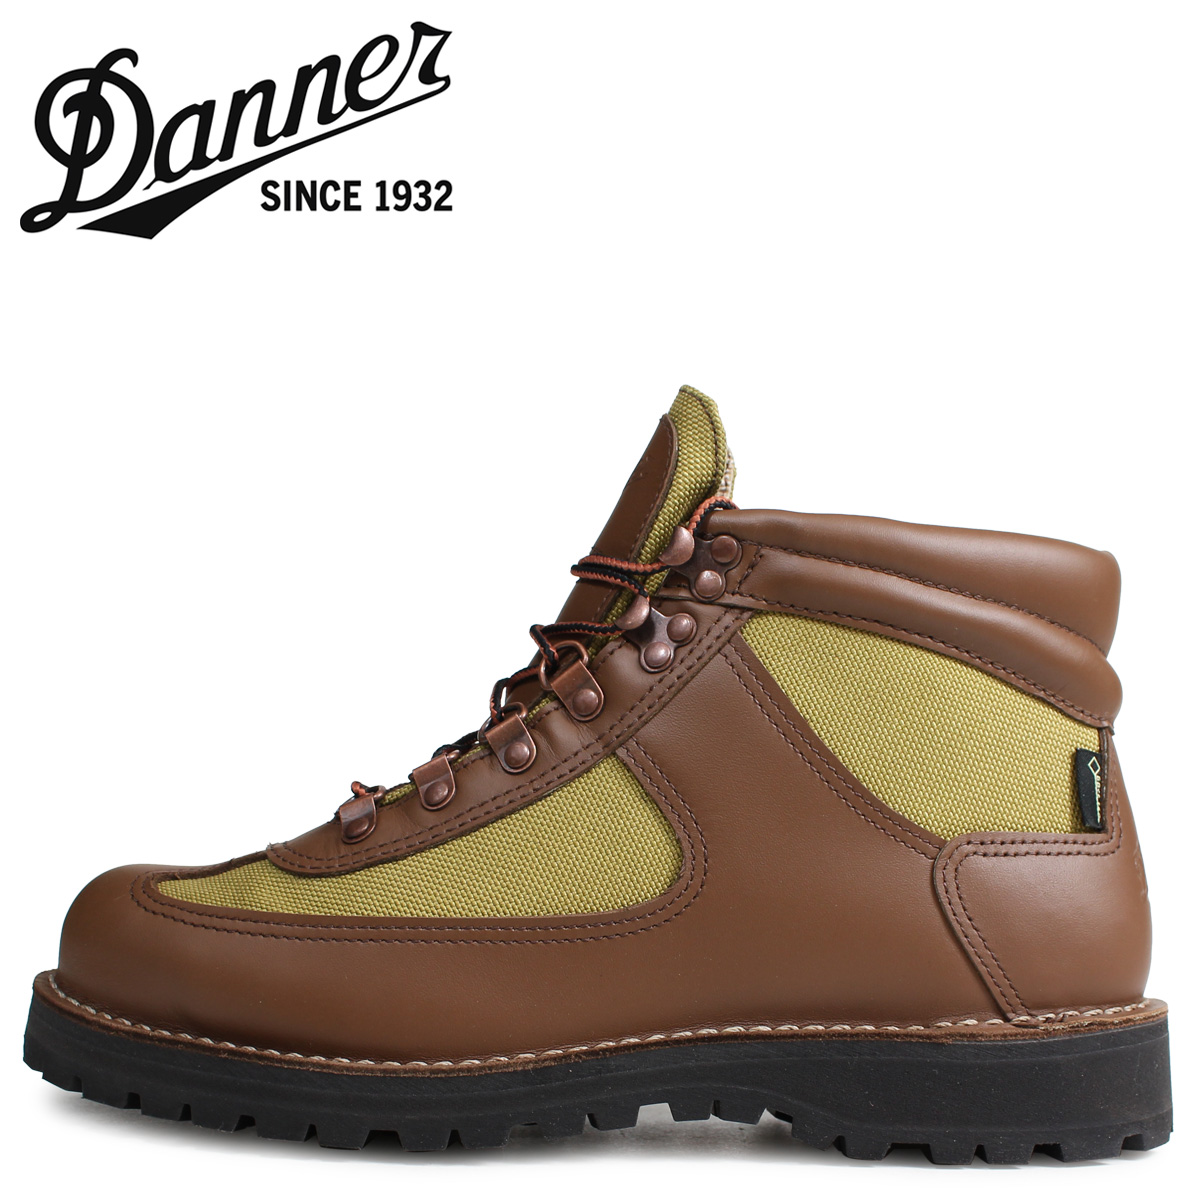 Danner ダナー フェザーライト ブーツ メンズ FEATHER LIGHT REVIVAL MADE IN USA EEワイズ ブラウン 30125